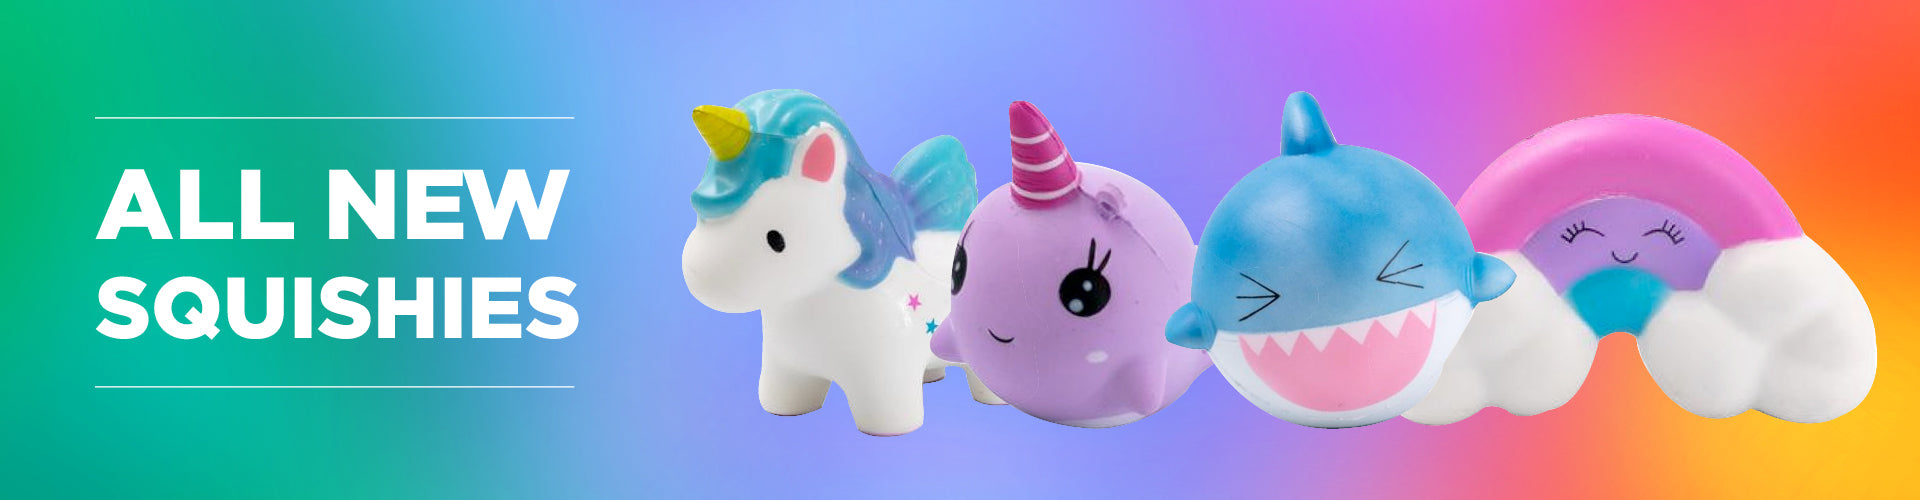 NEW 2019 Squishies